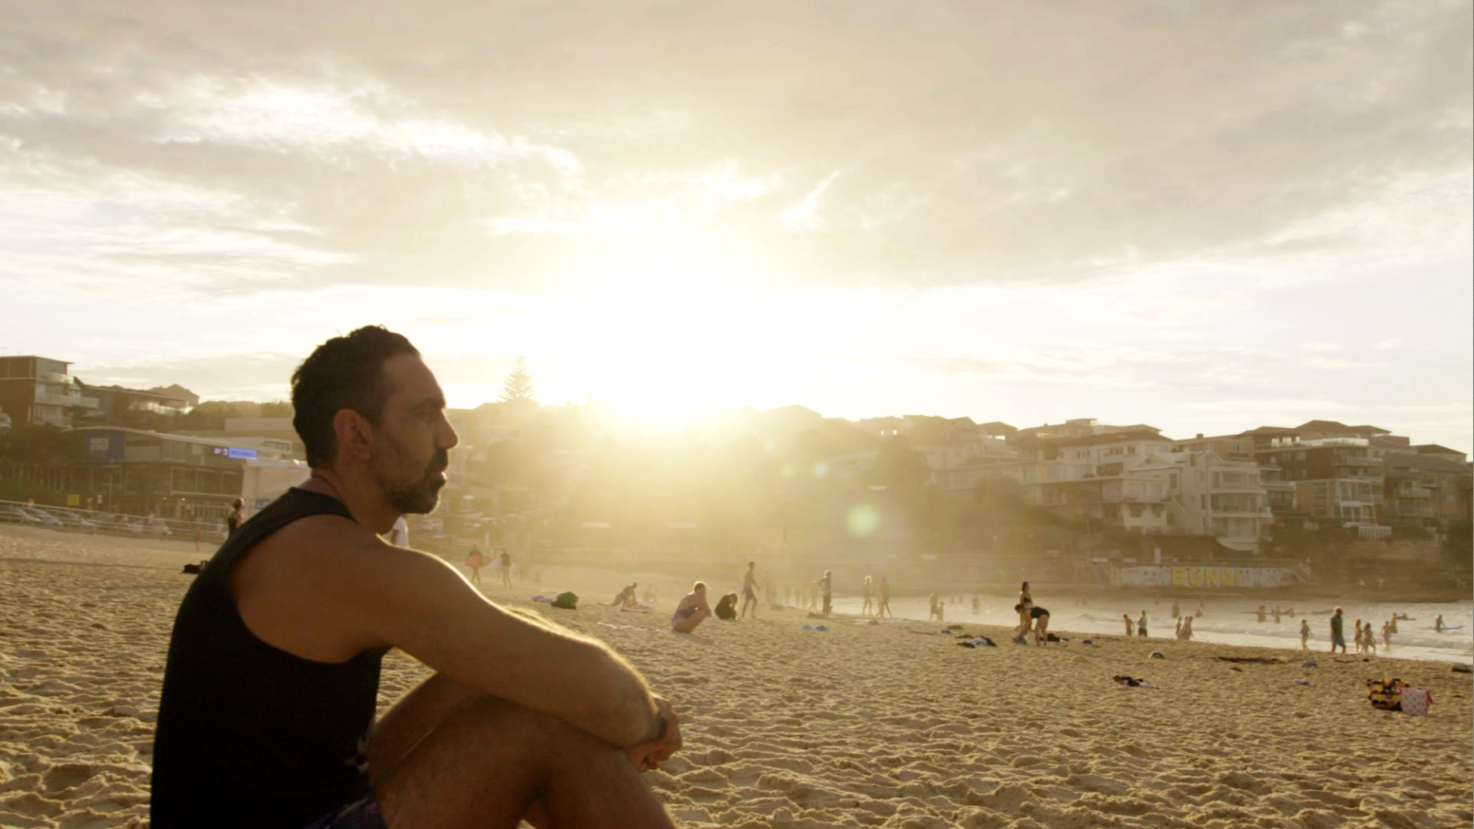 AUSTRALIAN_DREAM_BONDI_MORNING_1.1.1-2.png